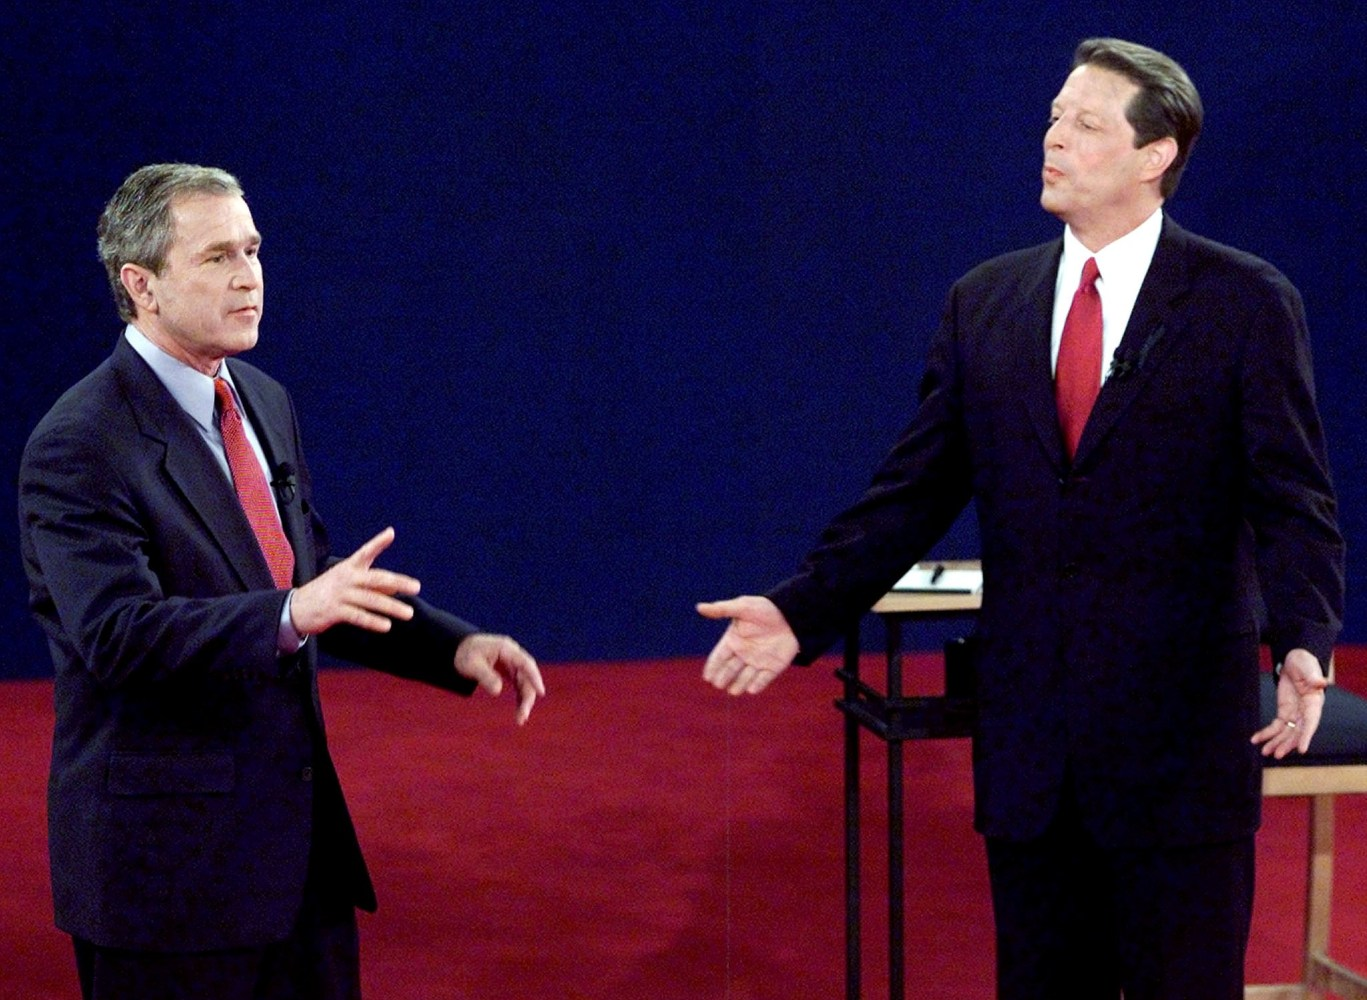 an analysis of the bush gore debate in 2000 Election 2000 - analysis from the newshour with jim lehrer with less than two thousand votes separating gore and bush first debate analysis.